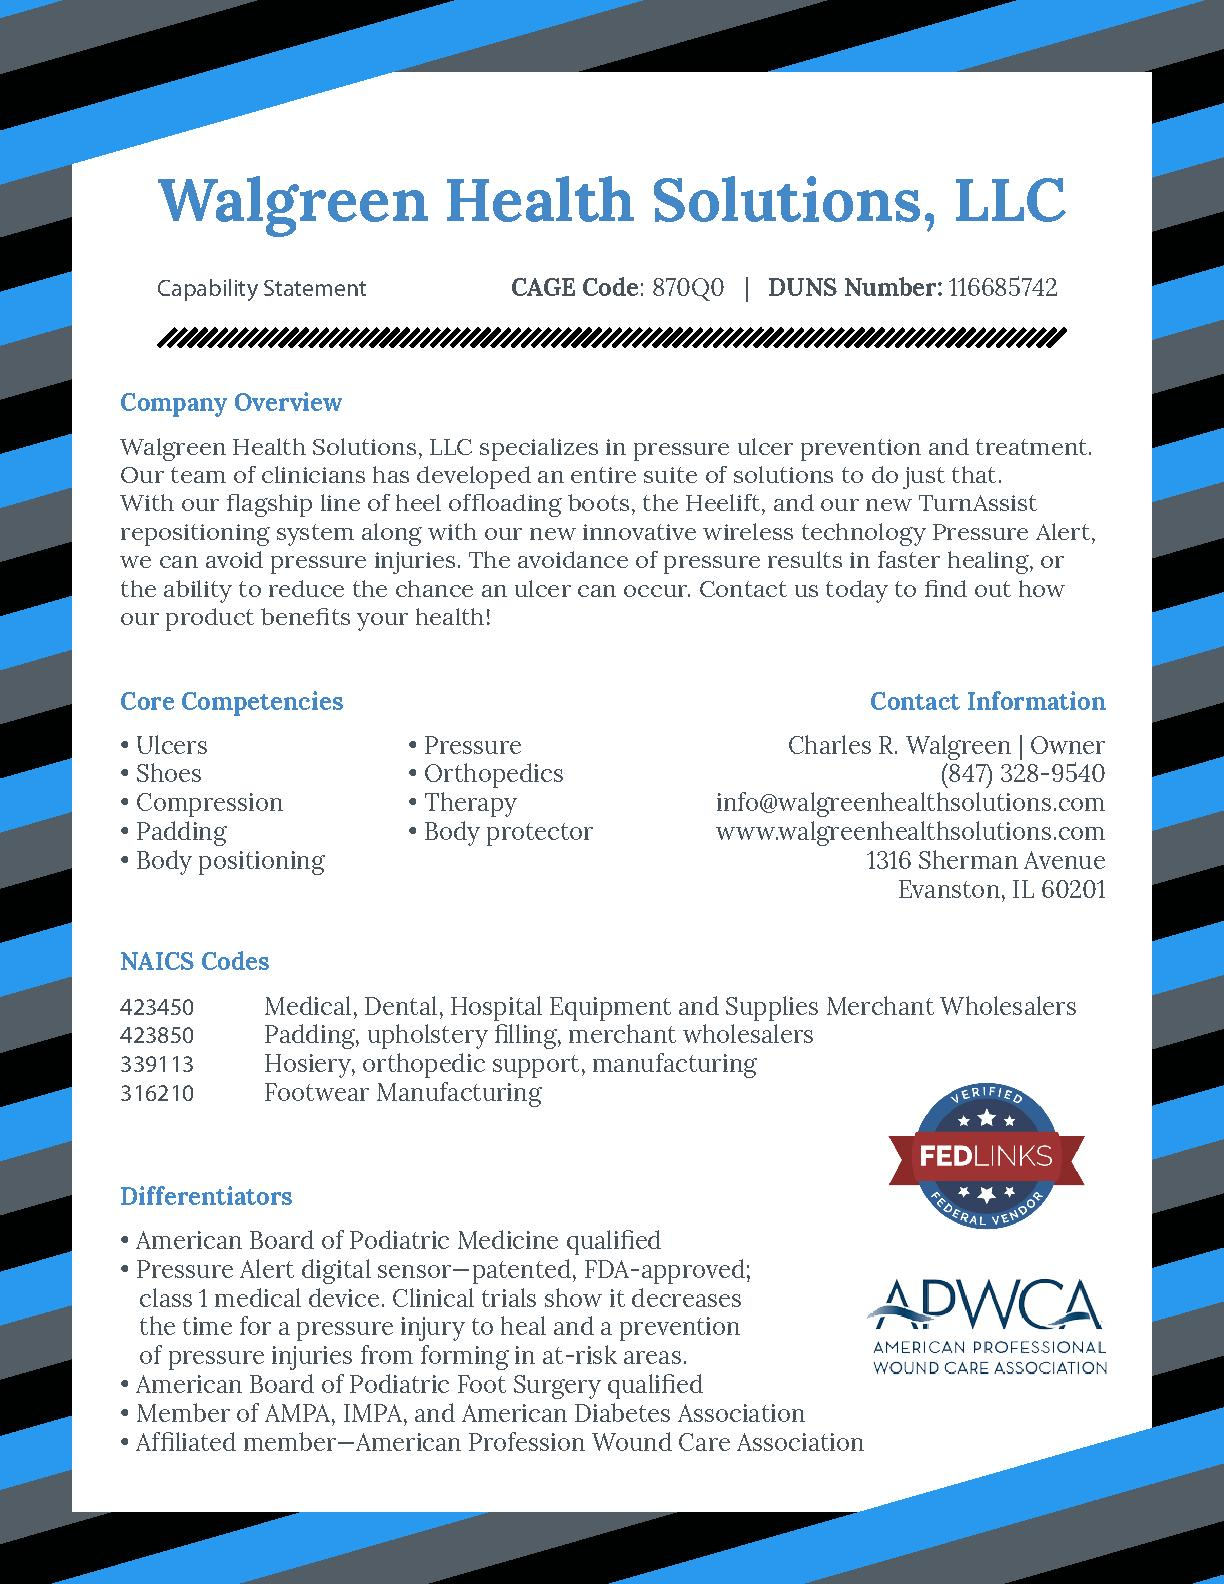 Walgreen health solutions capability statement